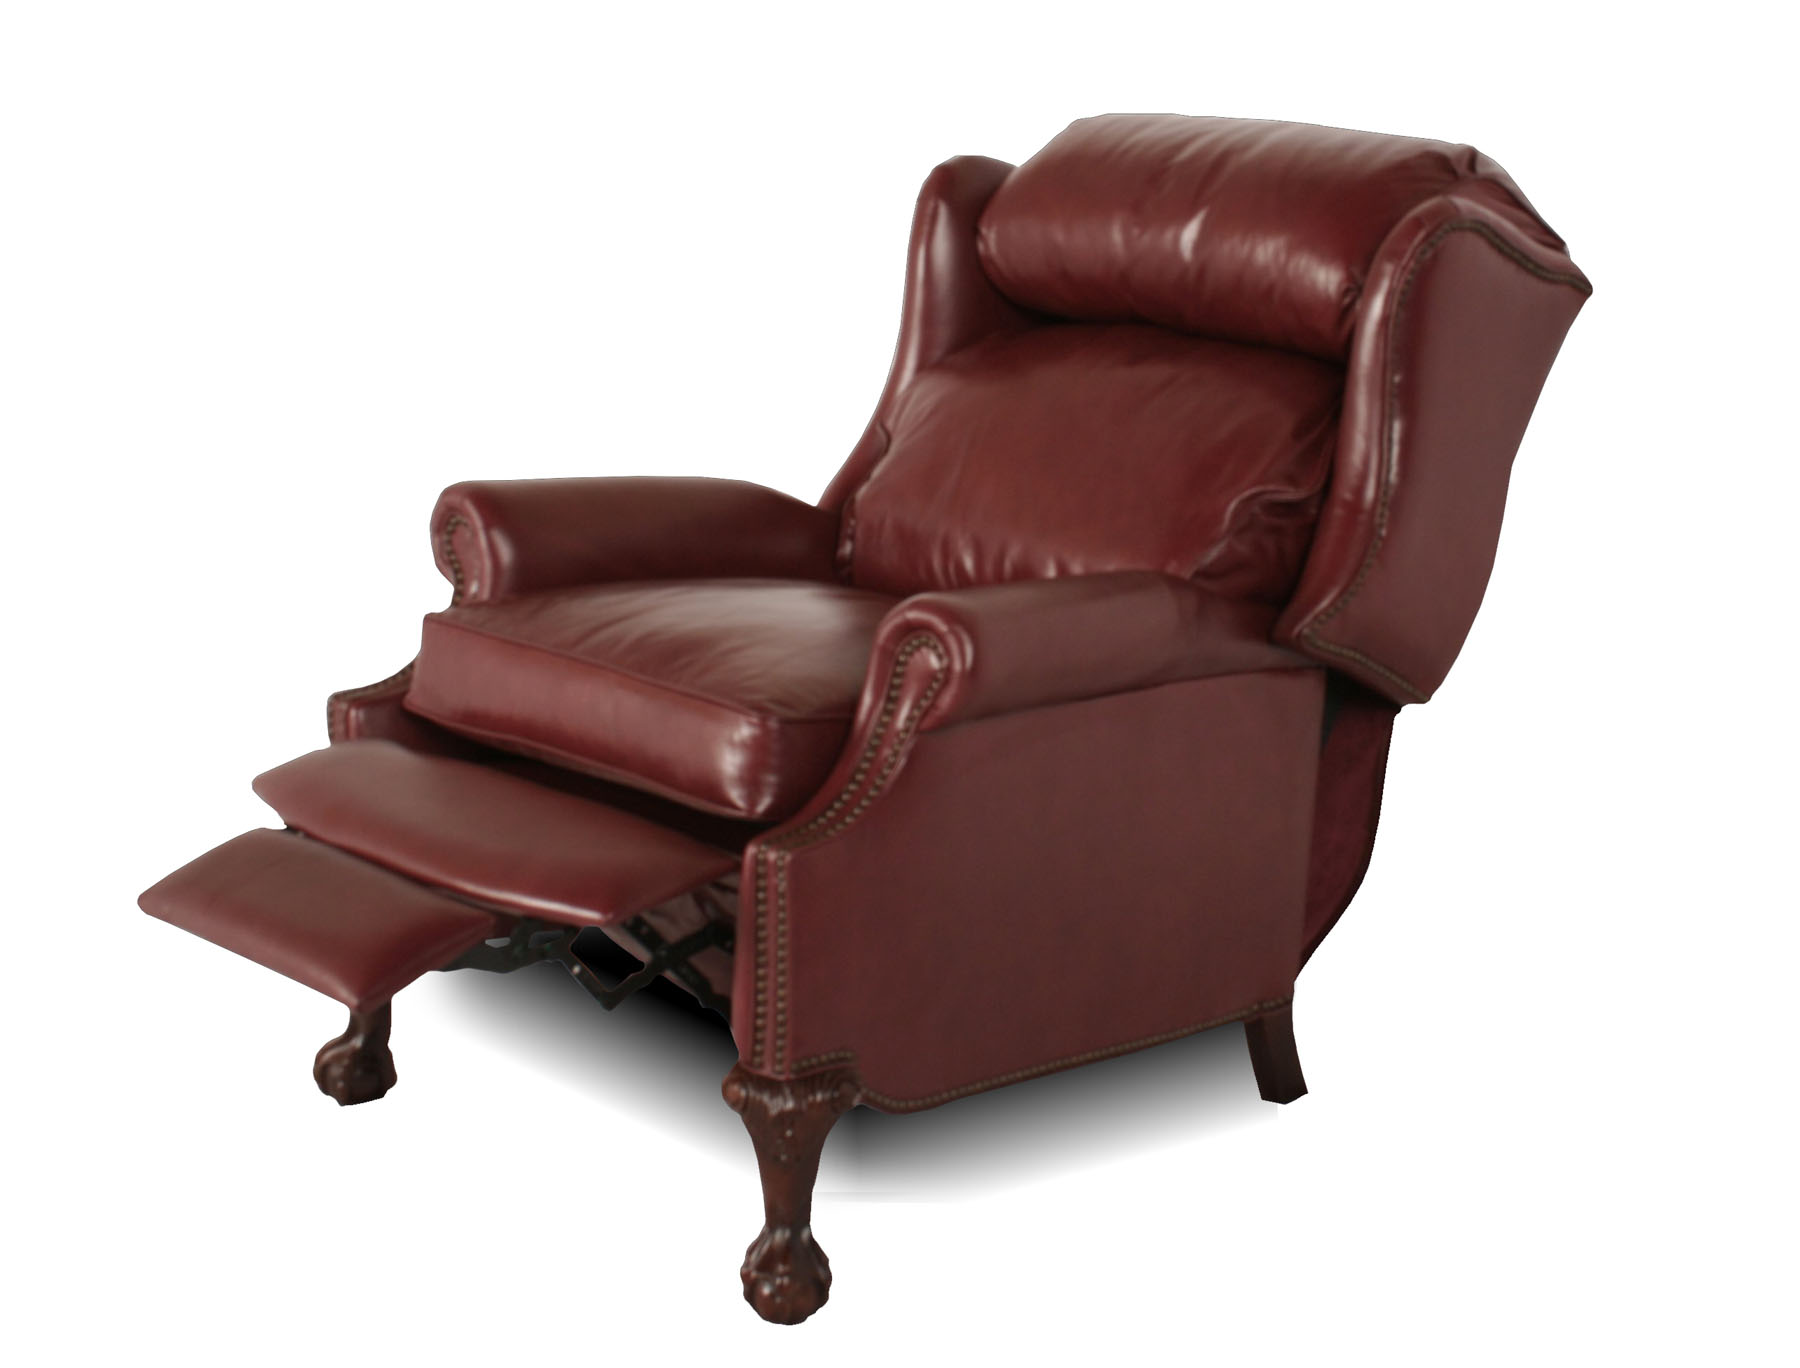 Leather Recliner Chairs Wingback Leather Recliner